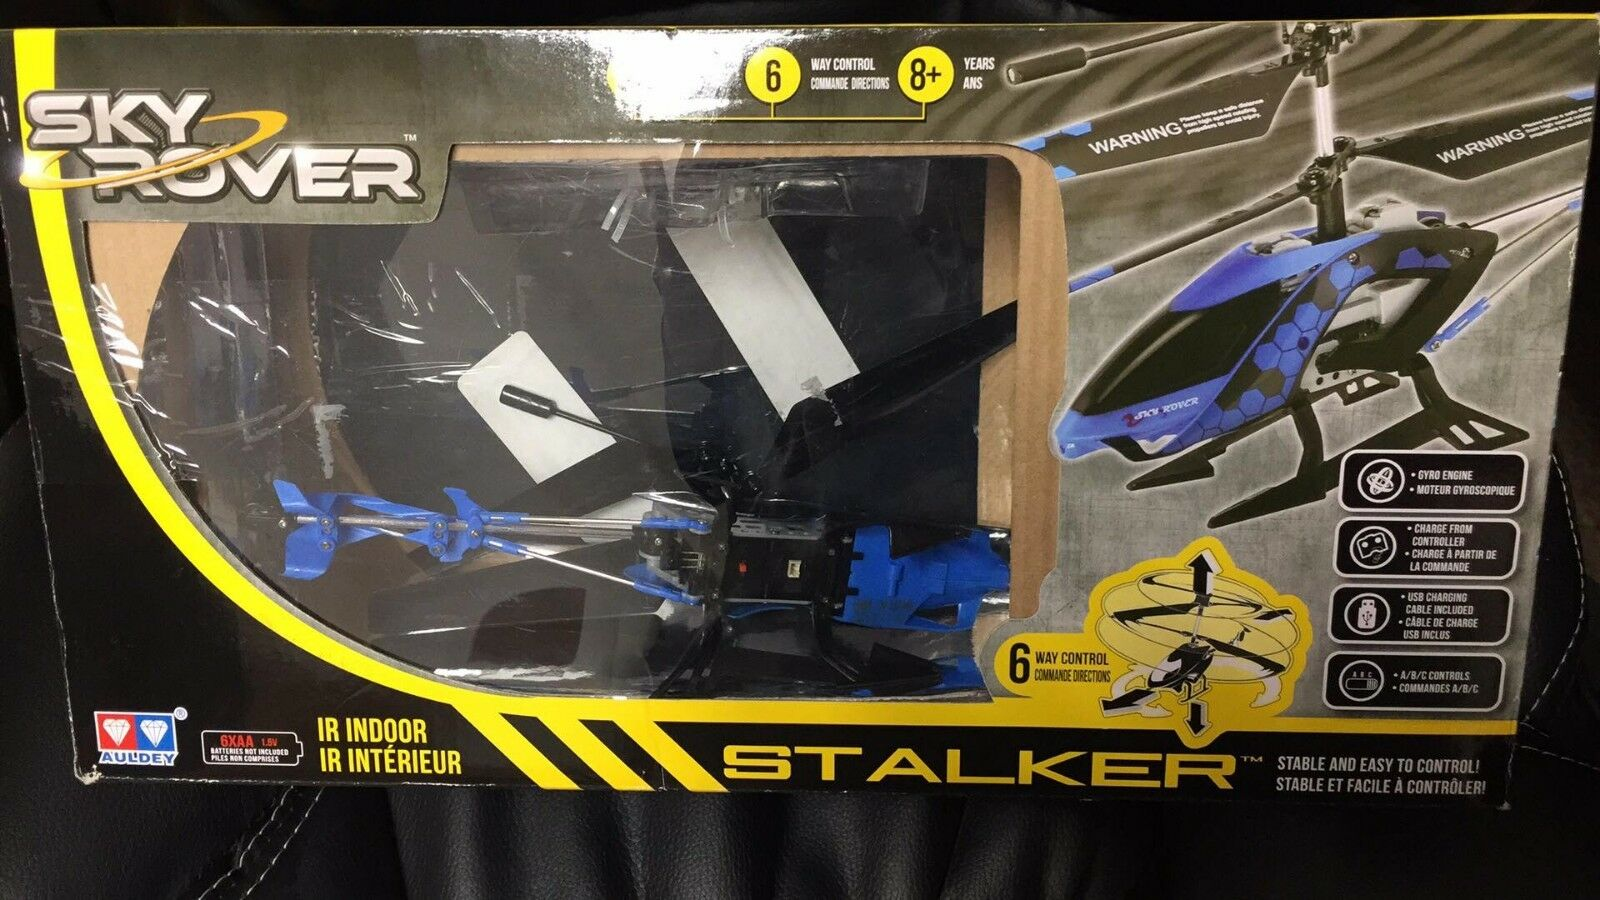 Sky Rover Stalker 3 Channel IR Gyro Helicopter Blue Vehicle 6-way Control C3